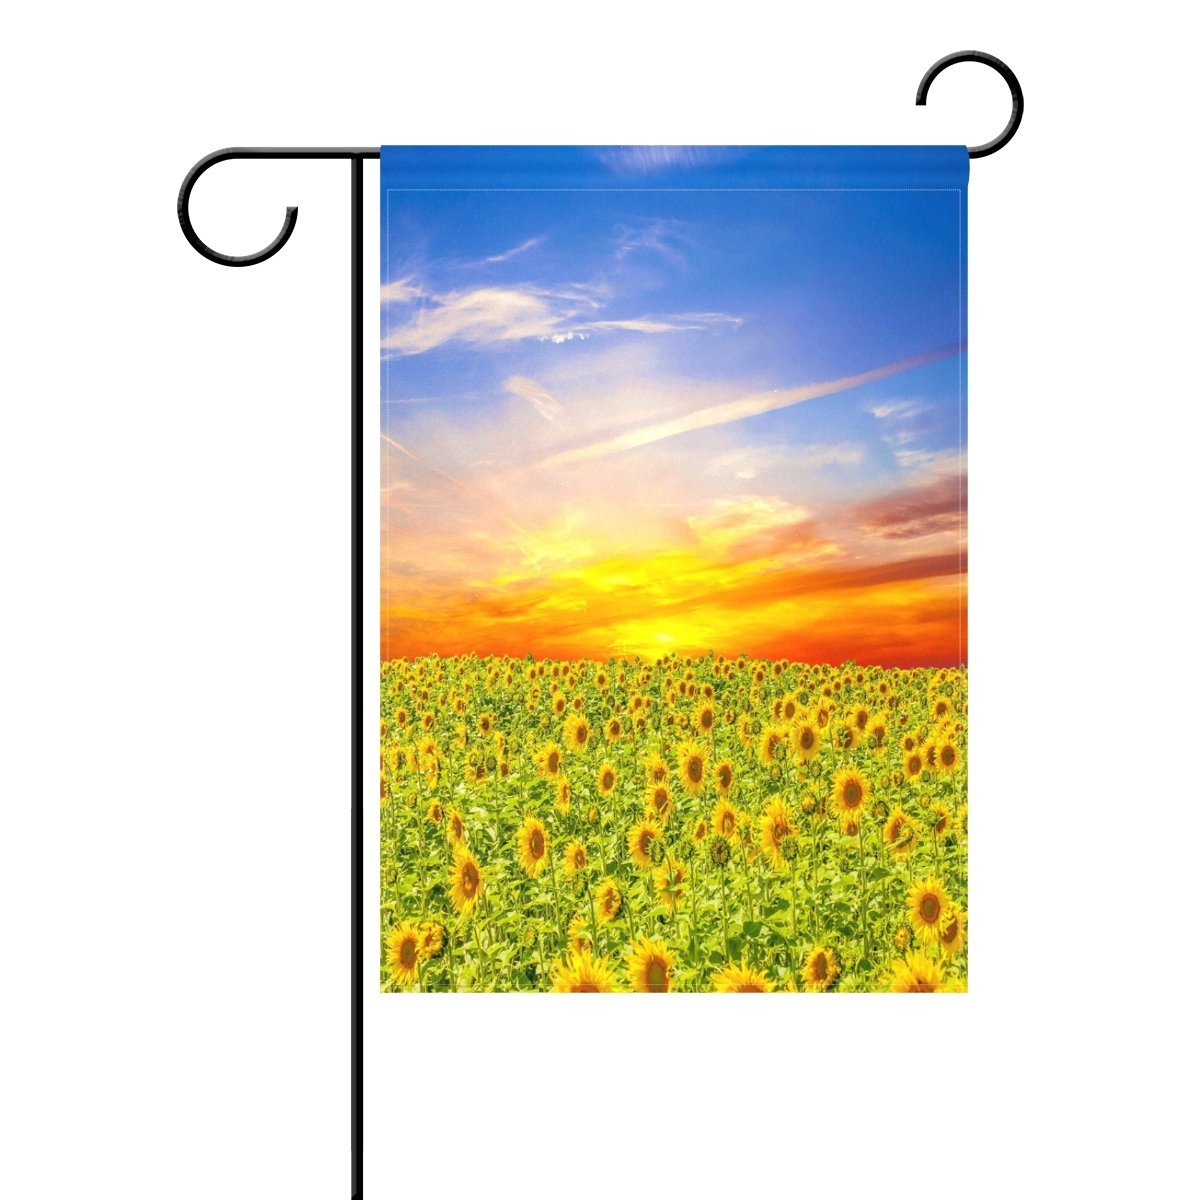 POPCreation Summer Sunny Sunflower Garden Flag Beautiful Lanscape Outdoor  Flag Home Party 12x18 Inches   Walmart.com